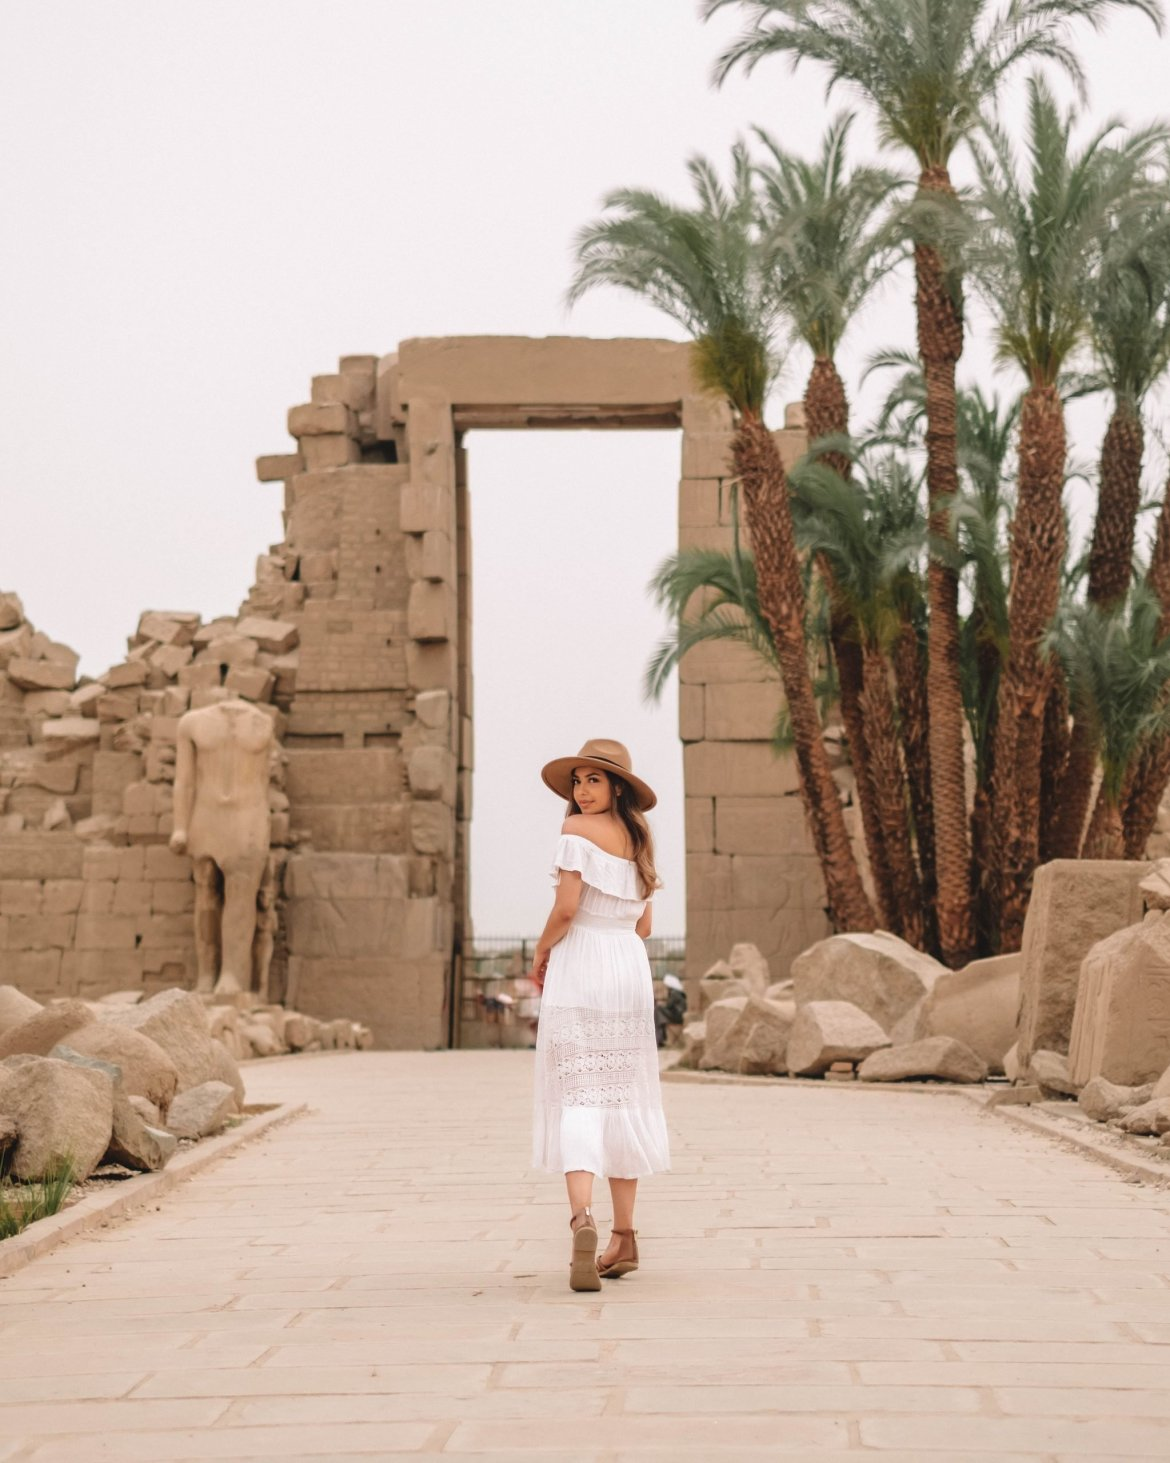 karnak temple in Luxor, Egypt - Egypt travel guide and itinerary